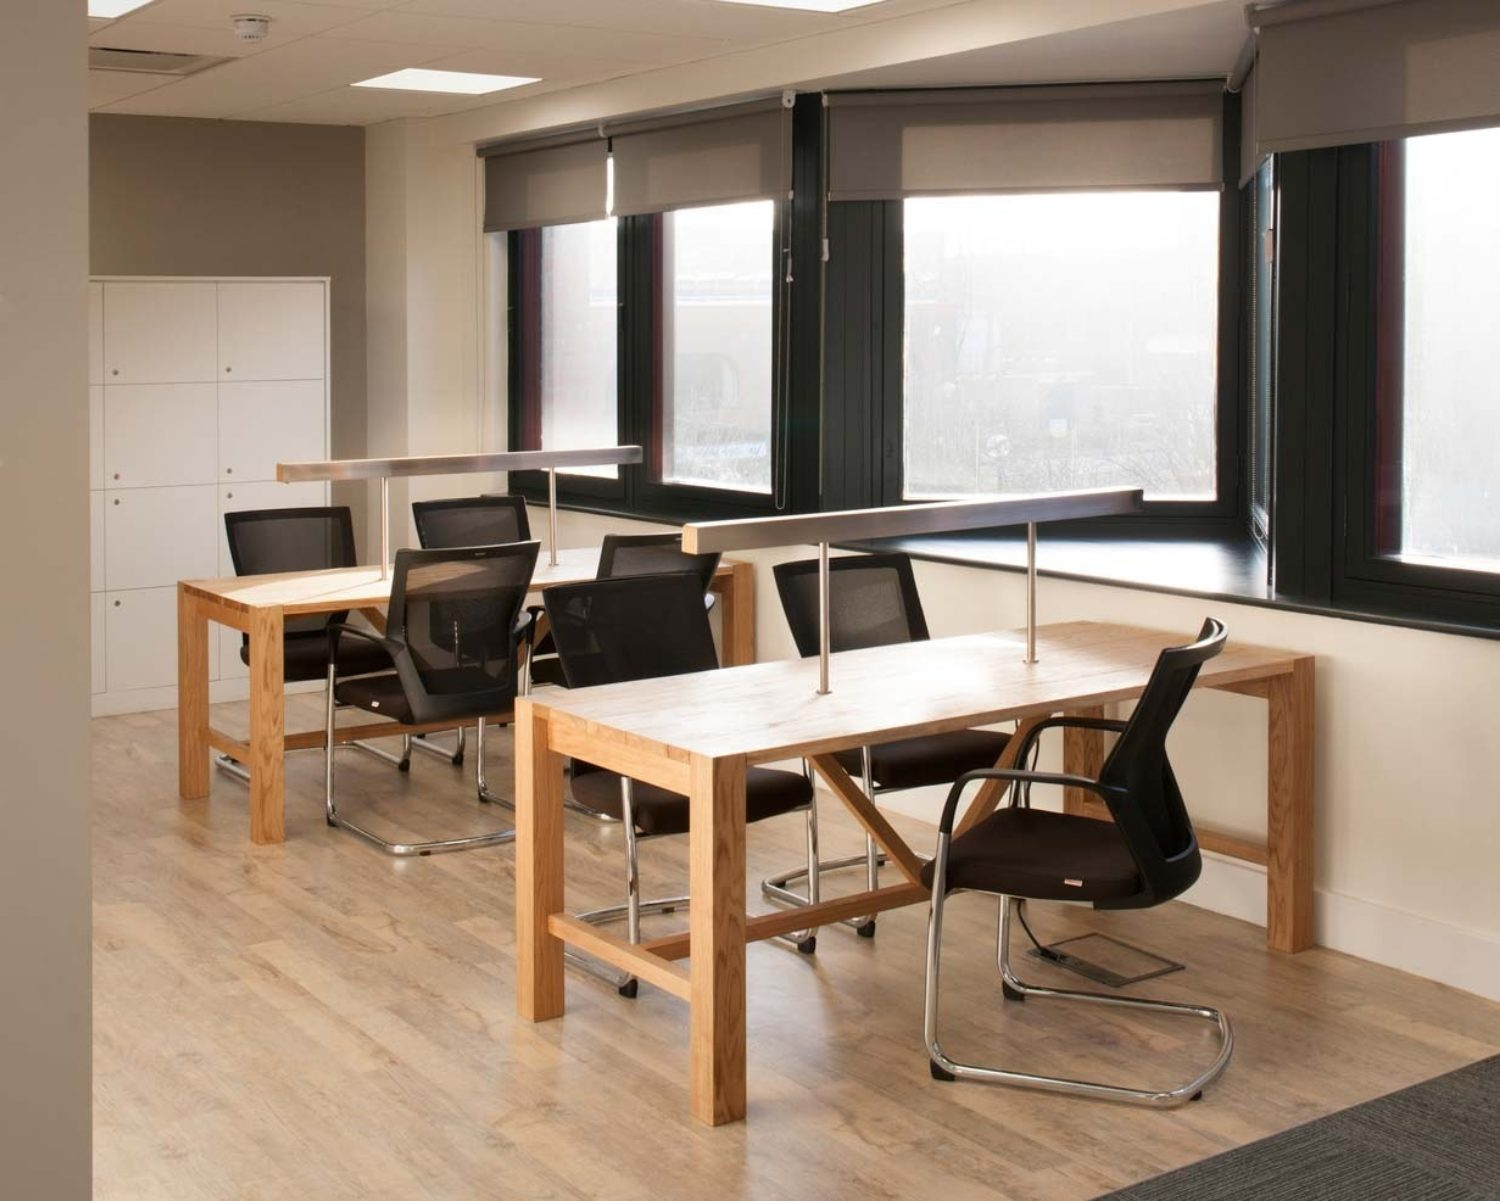 Open plan office design with natural wood